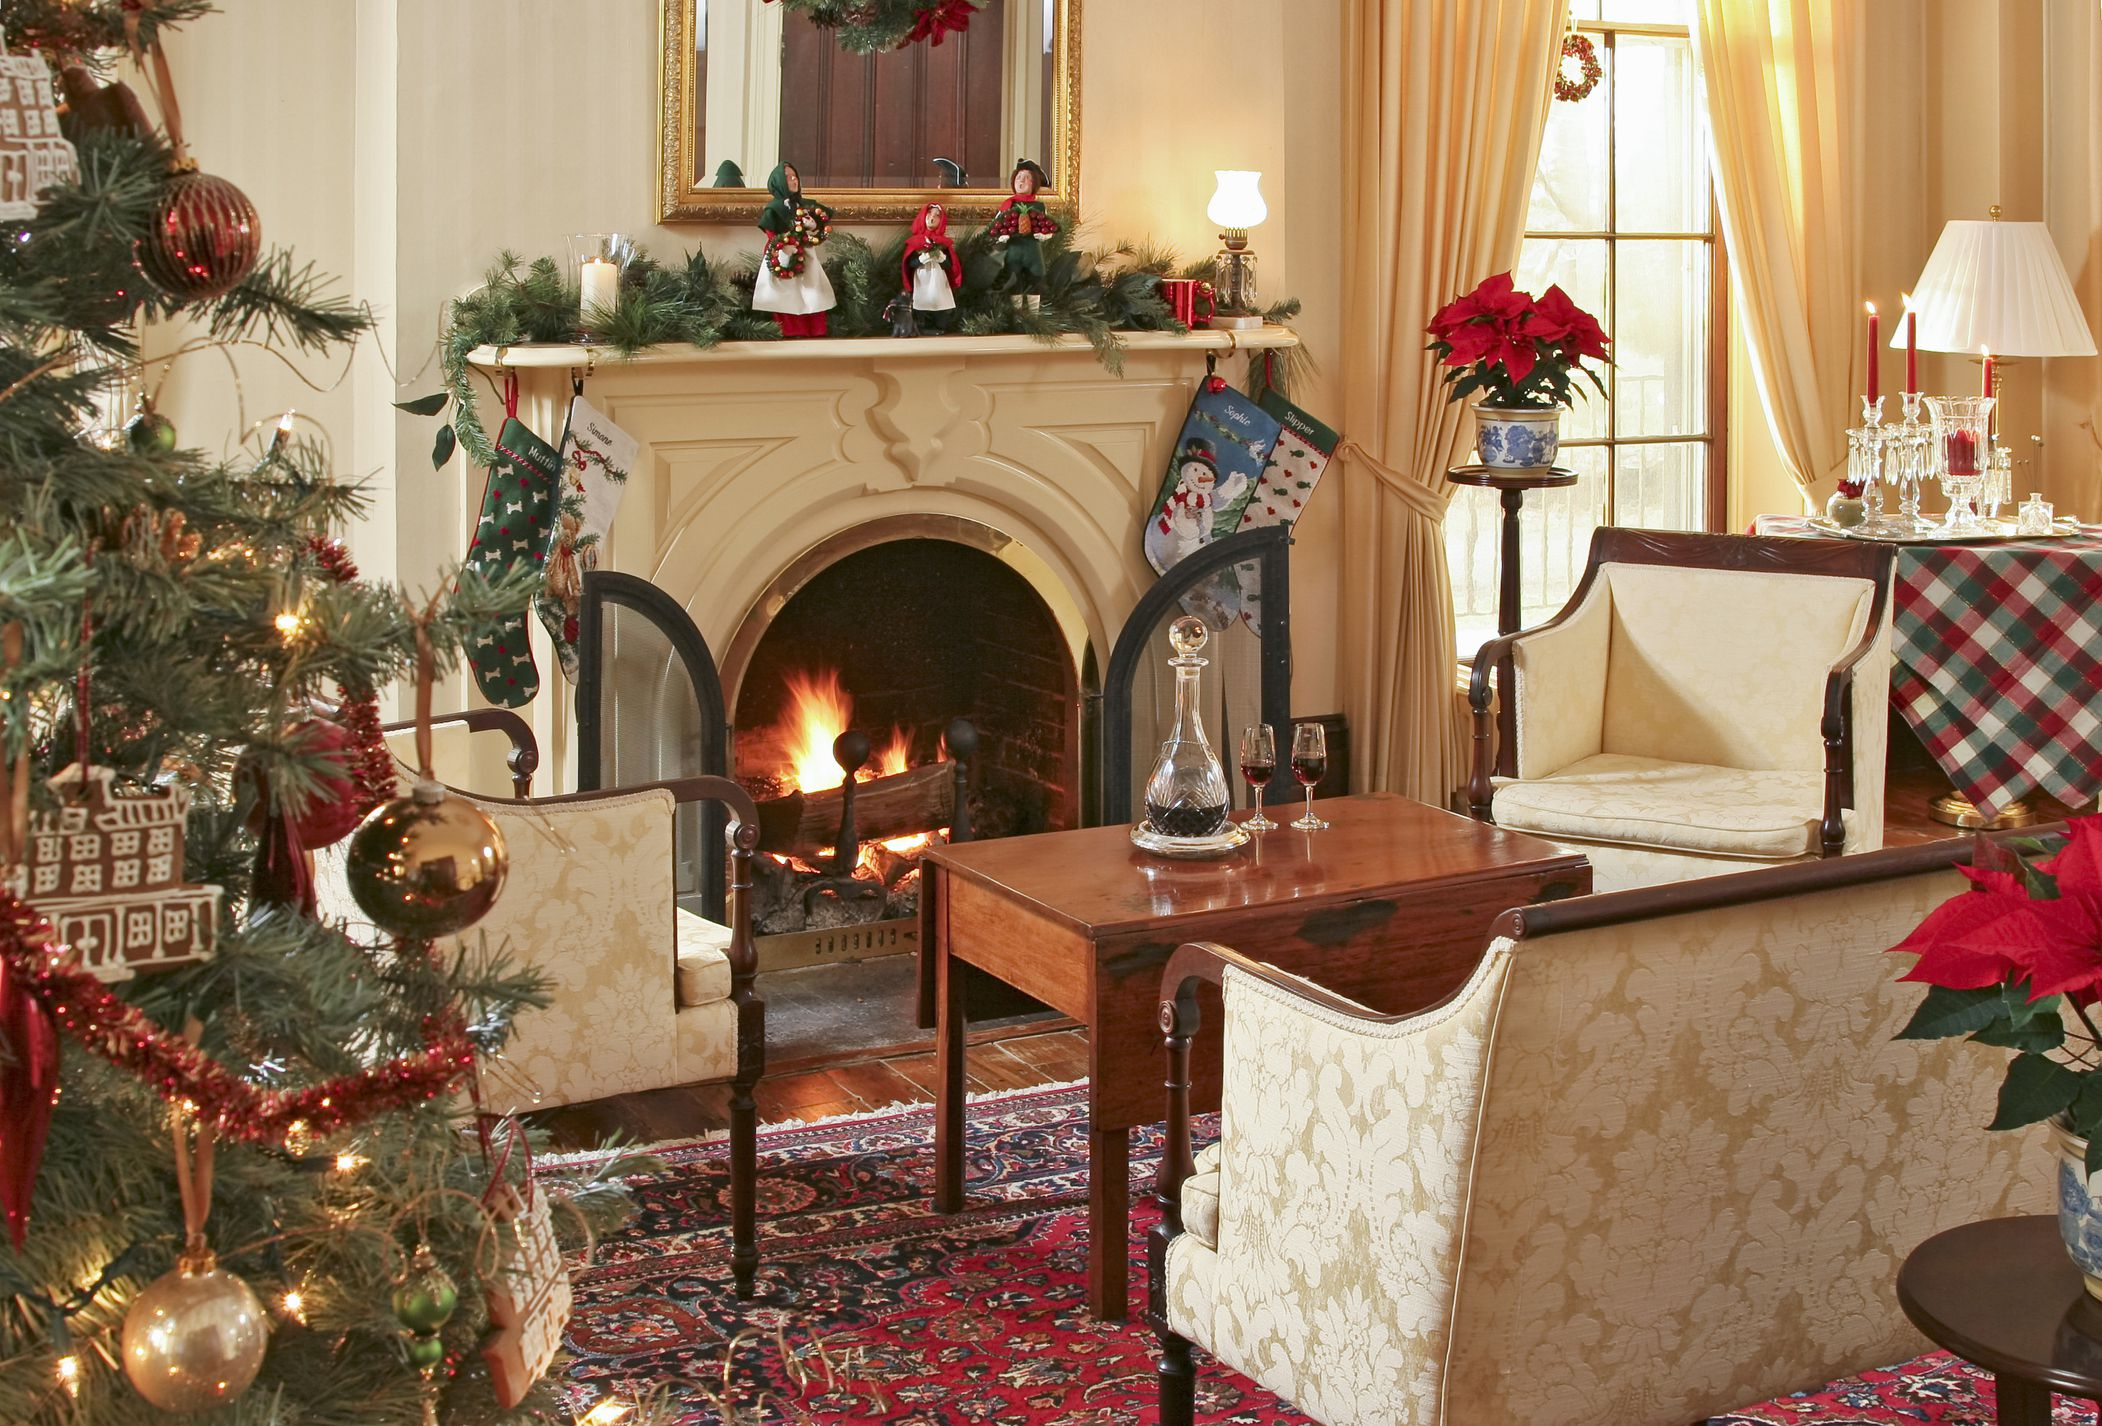 Christmas decorated rooms - Christmas Decorated Rooms 22